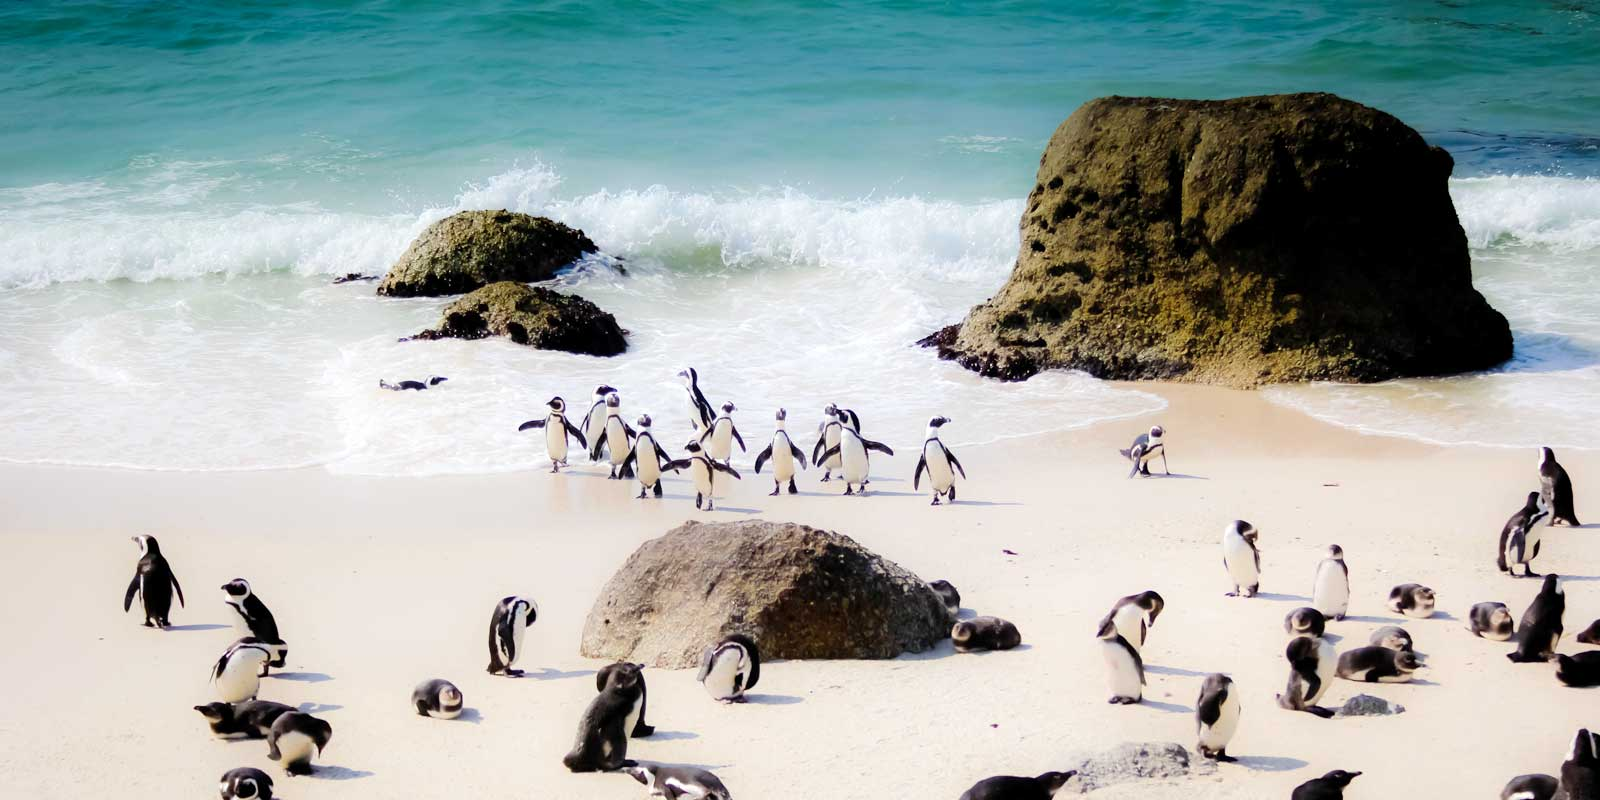 Explore South Africa, from the penguin filled beaches of Cape Town to vineyards of Stellenbosch.